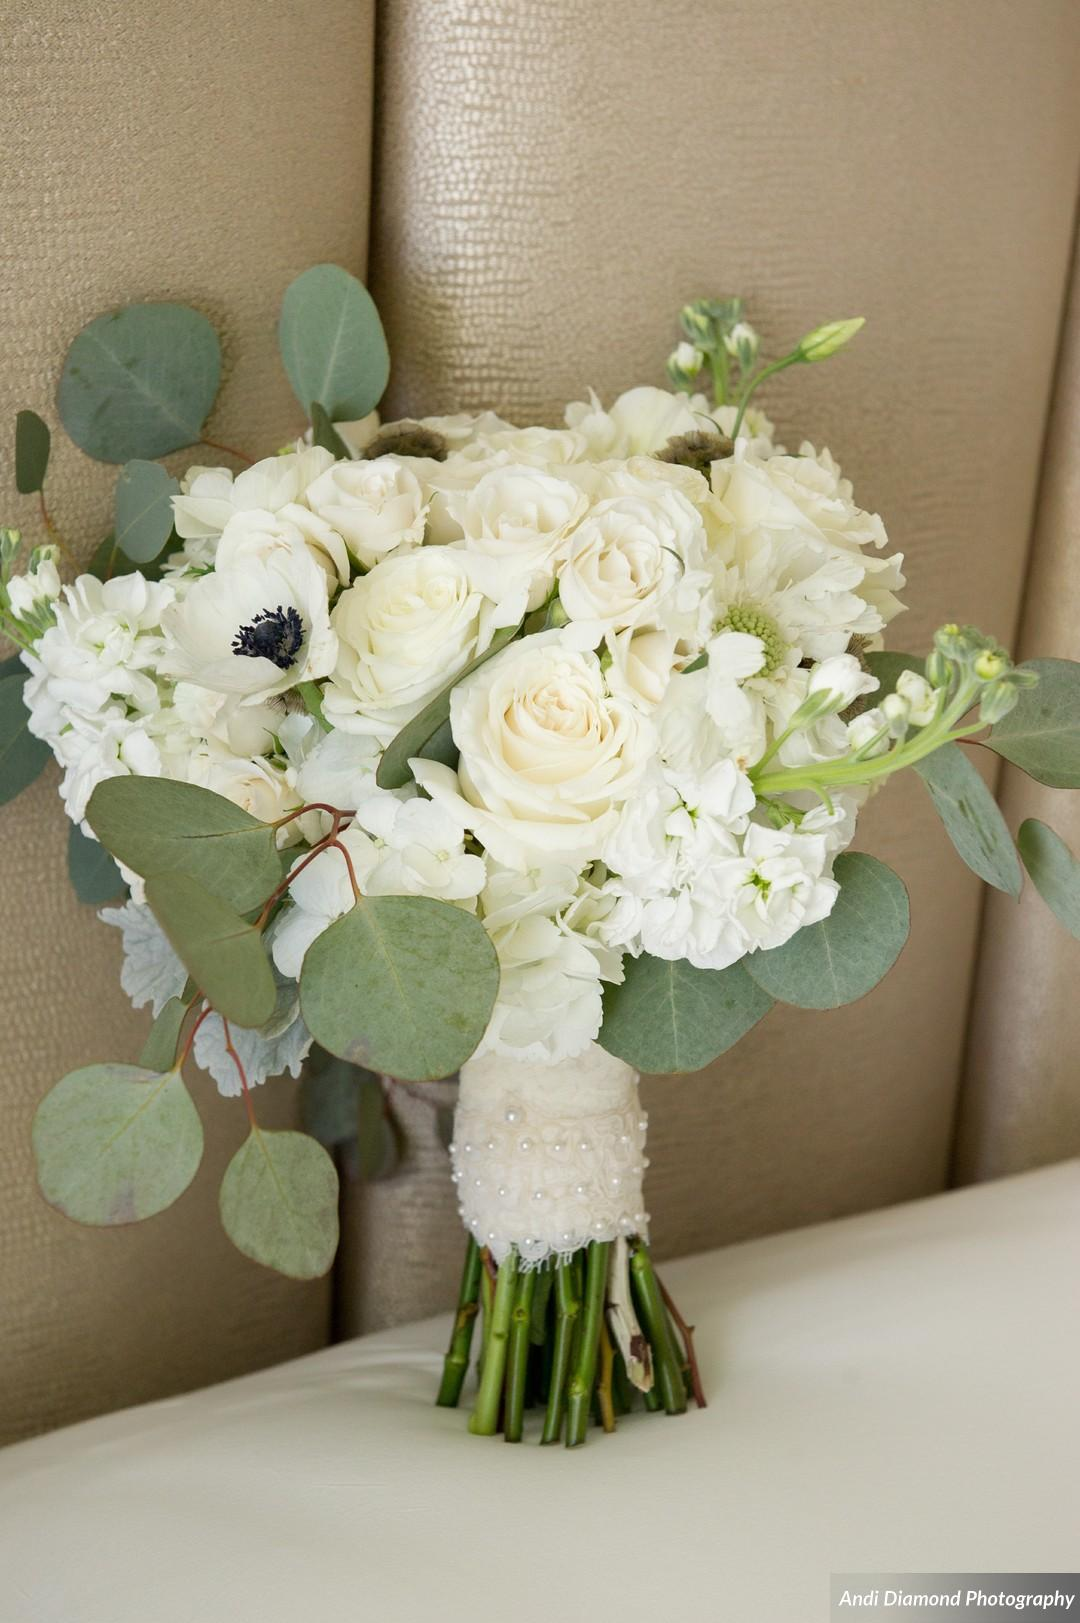 The bride's bouquet consisted of roses, hydrangea, anemones, lisianthus (in honor of the bride 'Liz'), and eucalyptus.